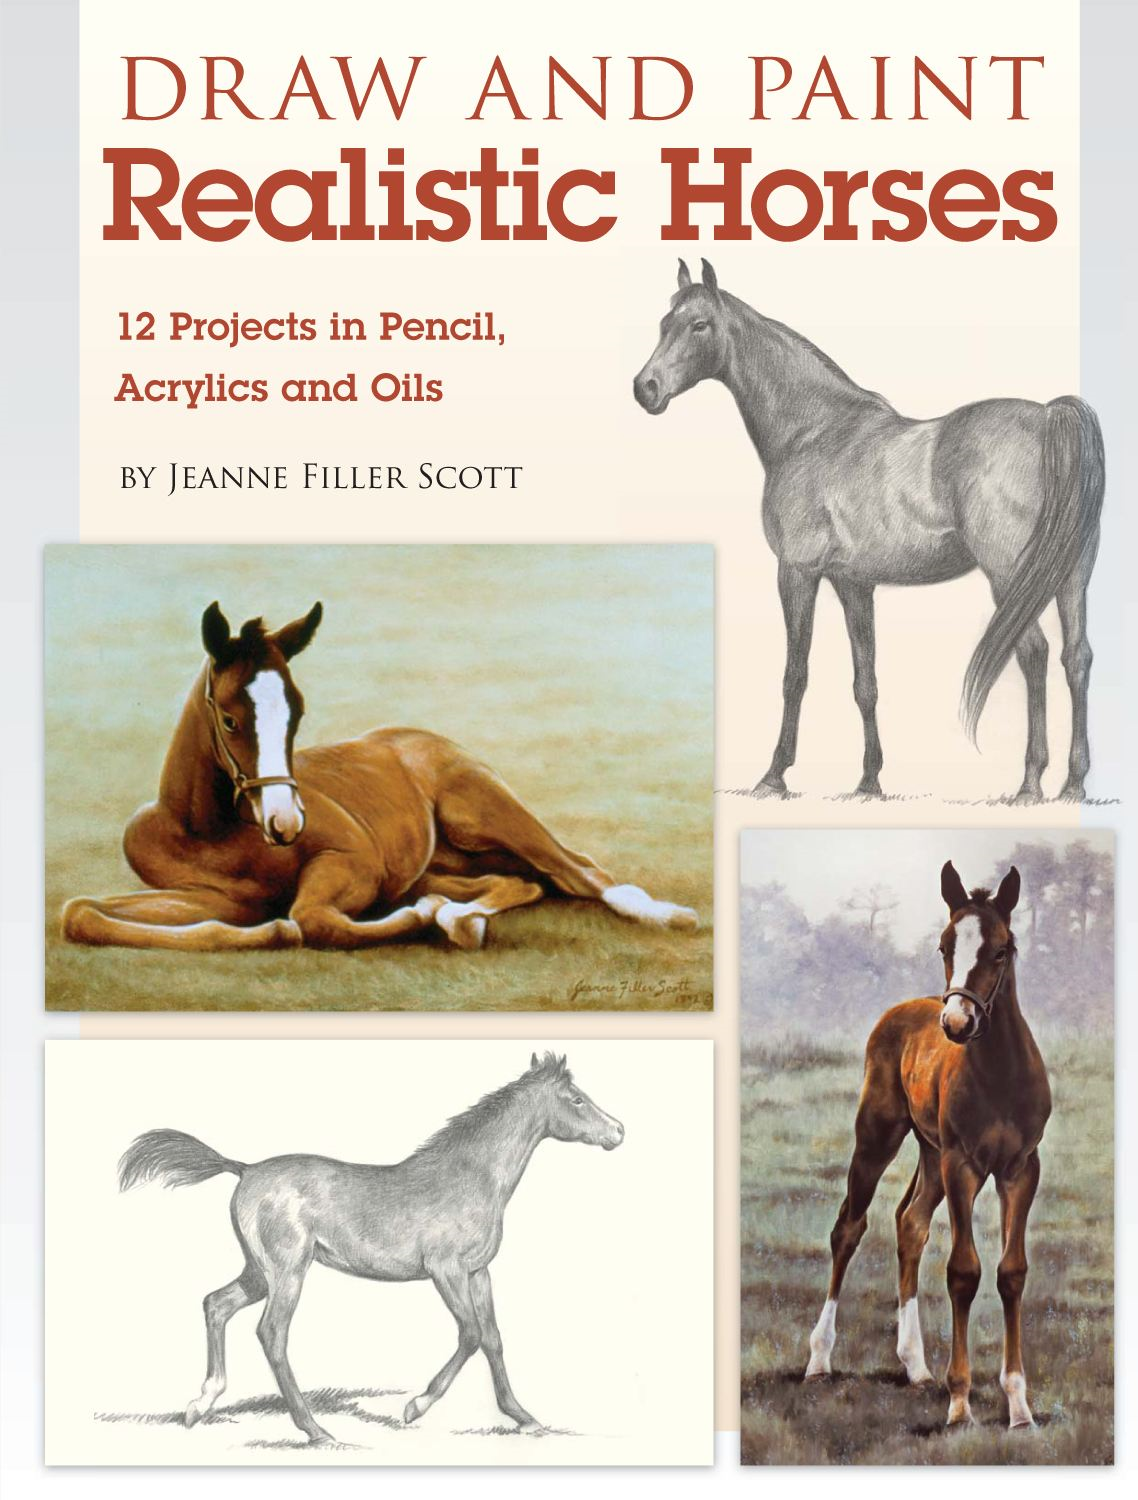 Draw and Paint Realistic Horses: Projects in Pencil, Acrylics and Oills By: Jeanne Filler Scott